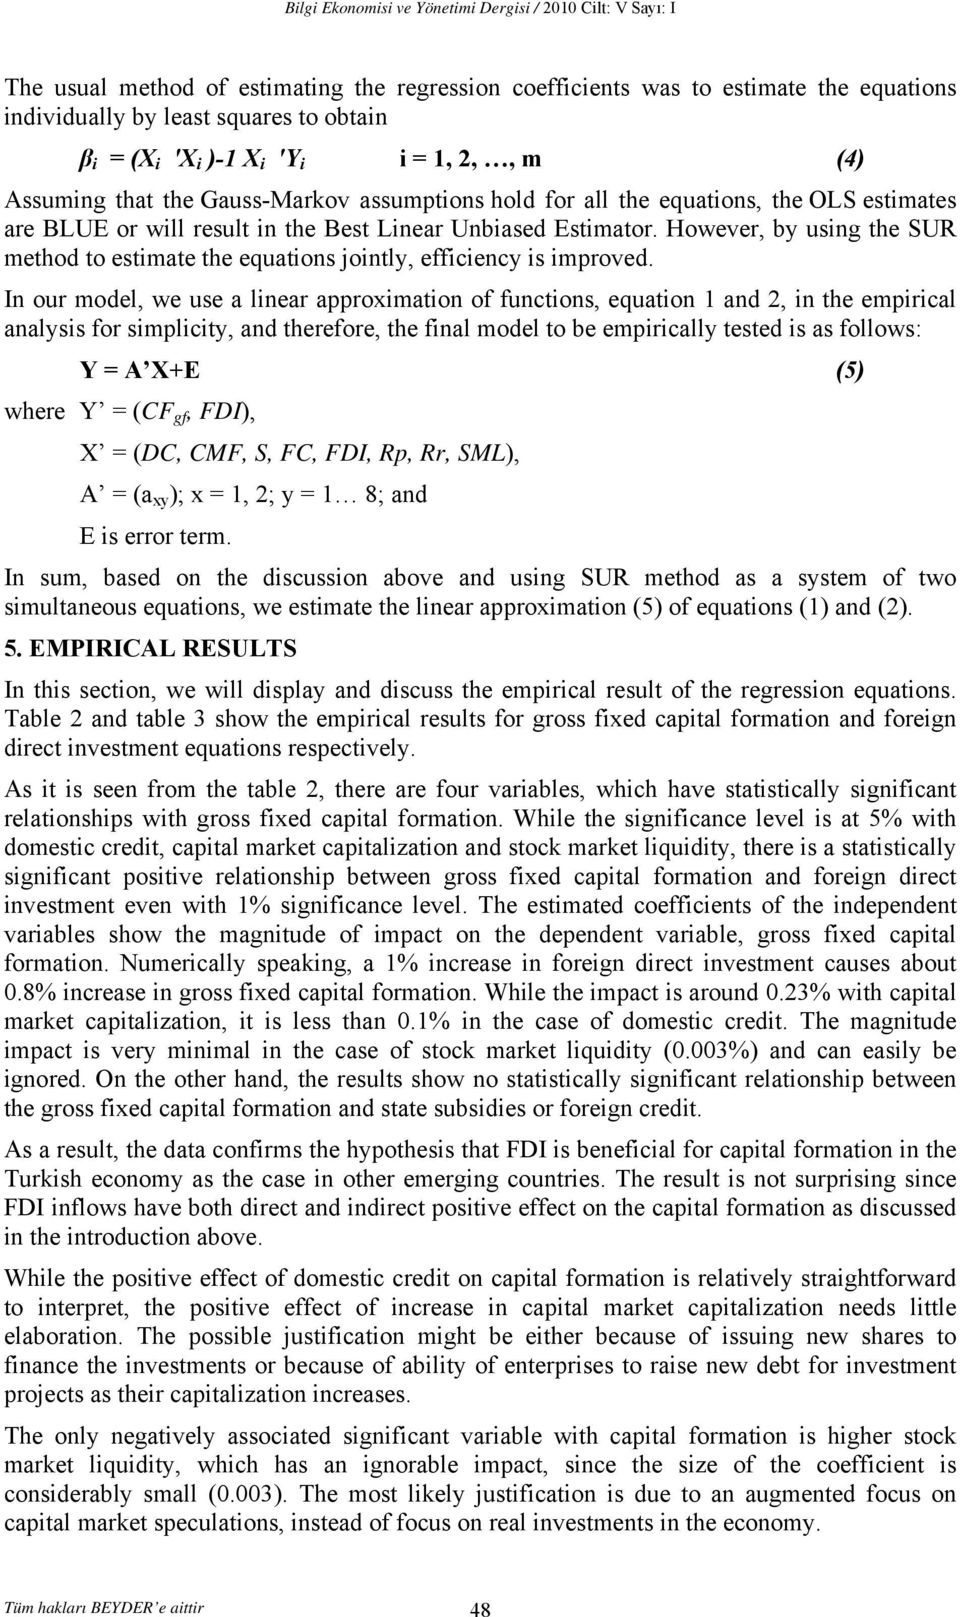 However, by using the SUR method to estimate the equations jointly, efficiency is improved.